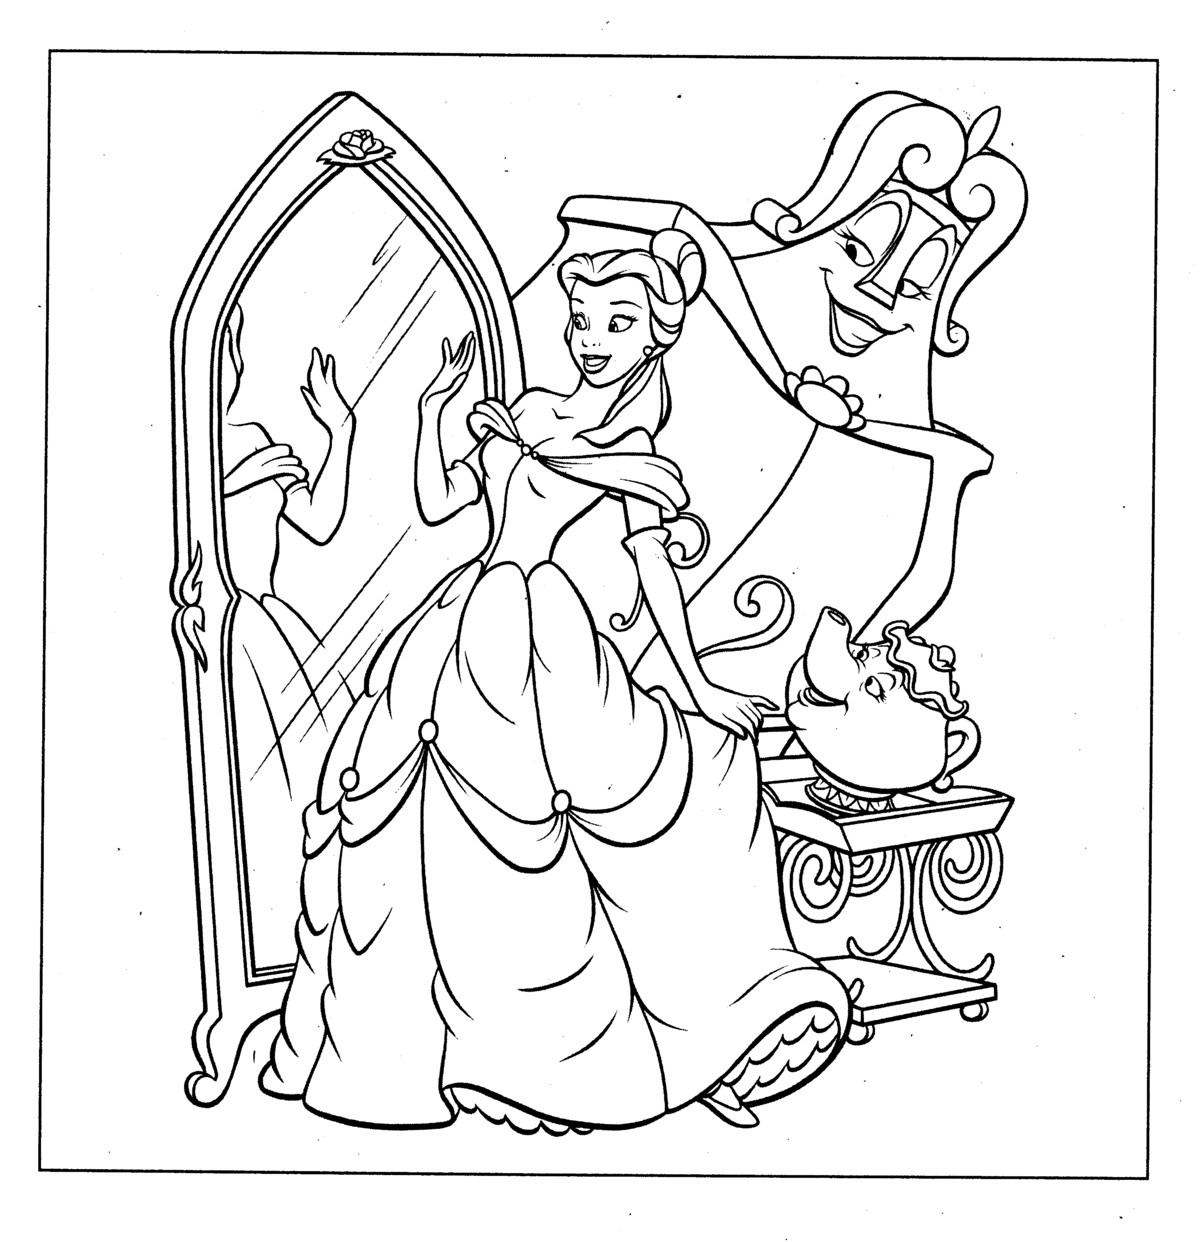 Disney Princess Coloring Pages Ideas